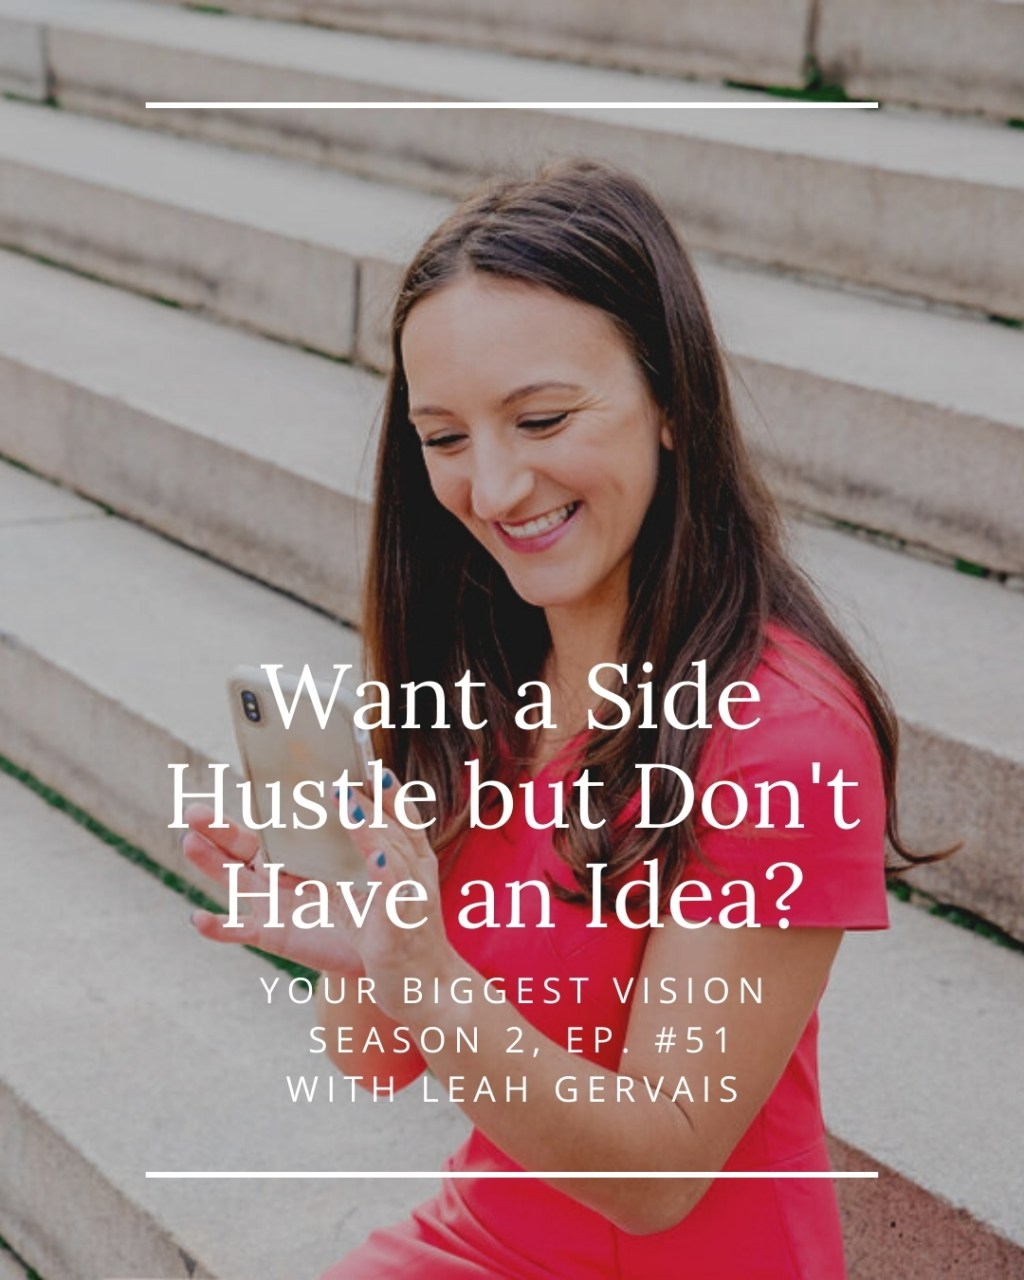 Want a side hustle but don't have an idea? Hear the three reasons why you are ready to start your side hustle even without the perfect idea.